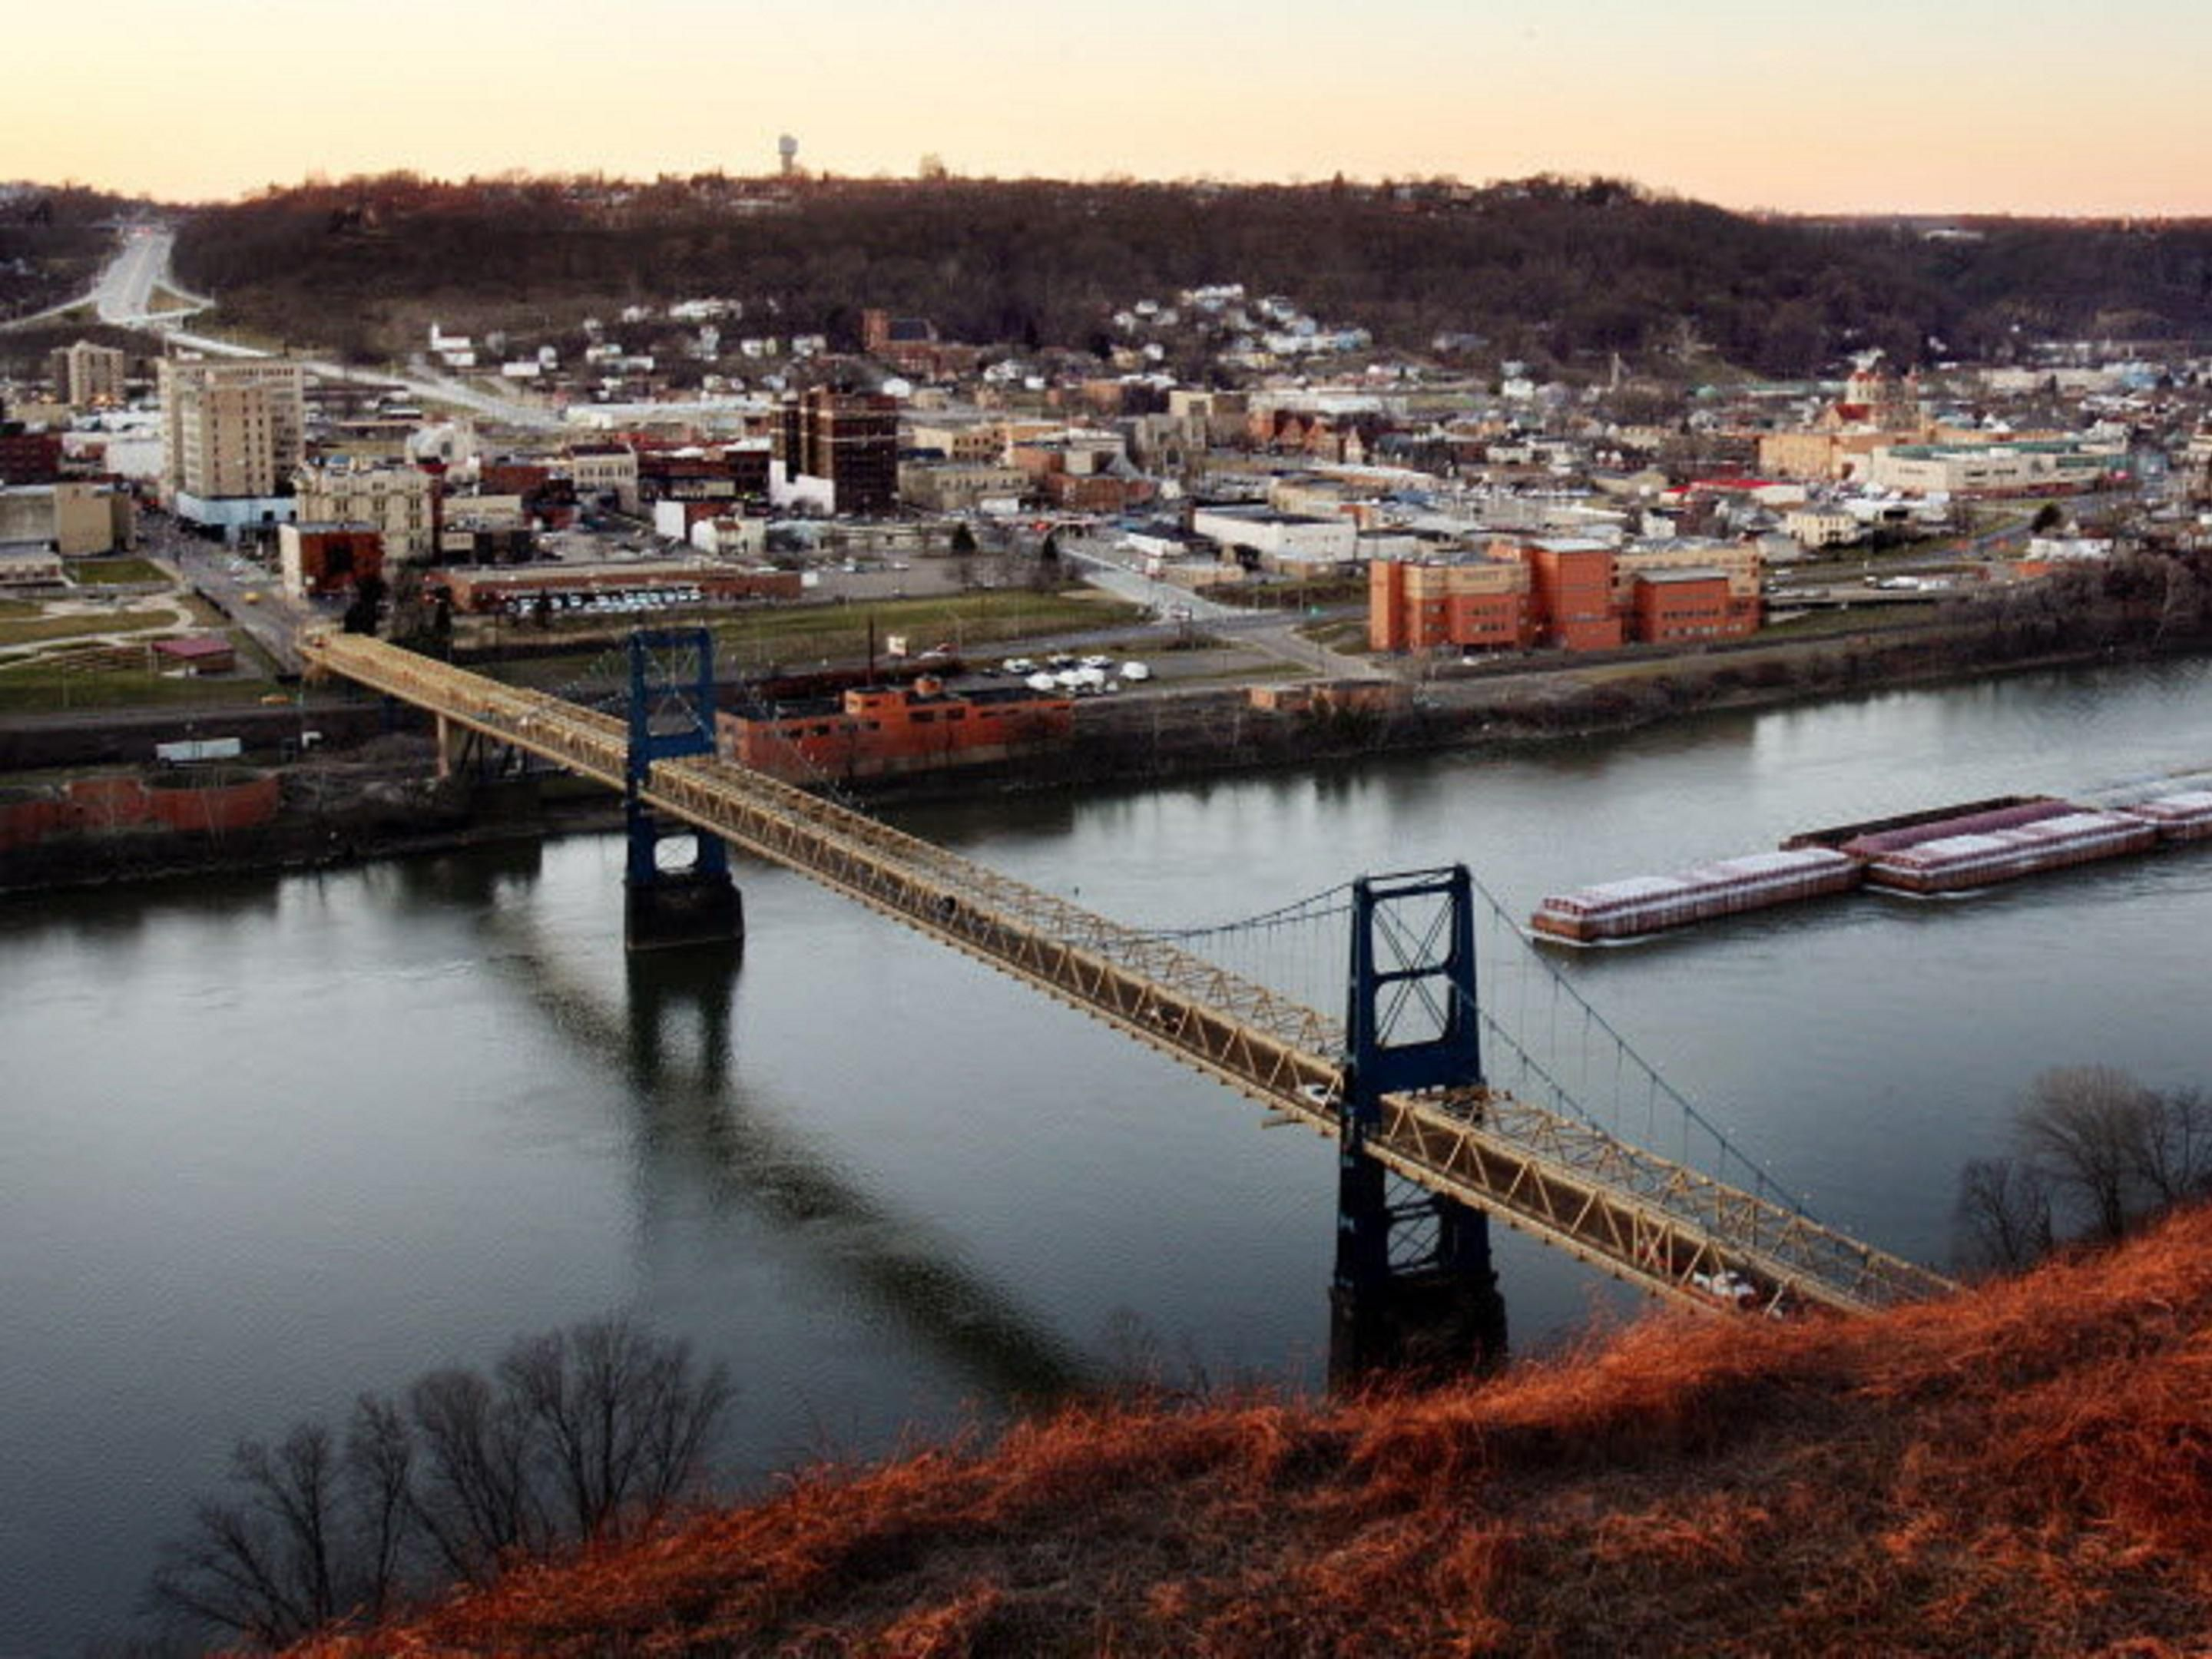 Visit Historic Steubenville Ohio, located just 3 MI from our hotel